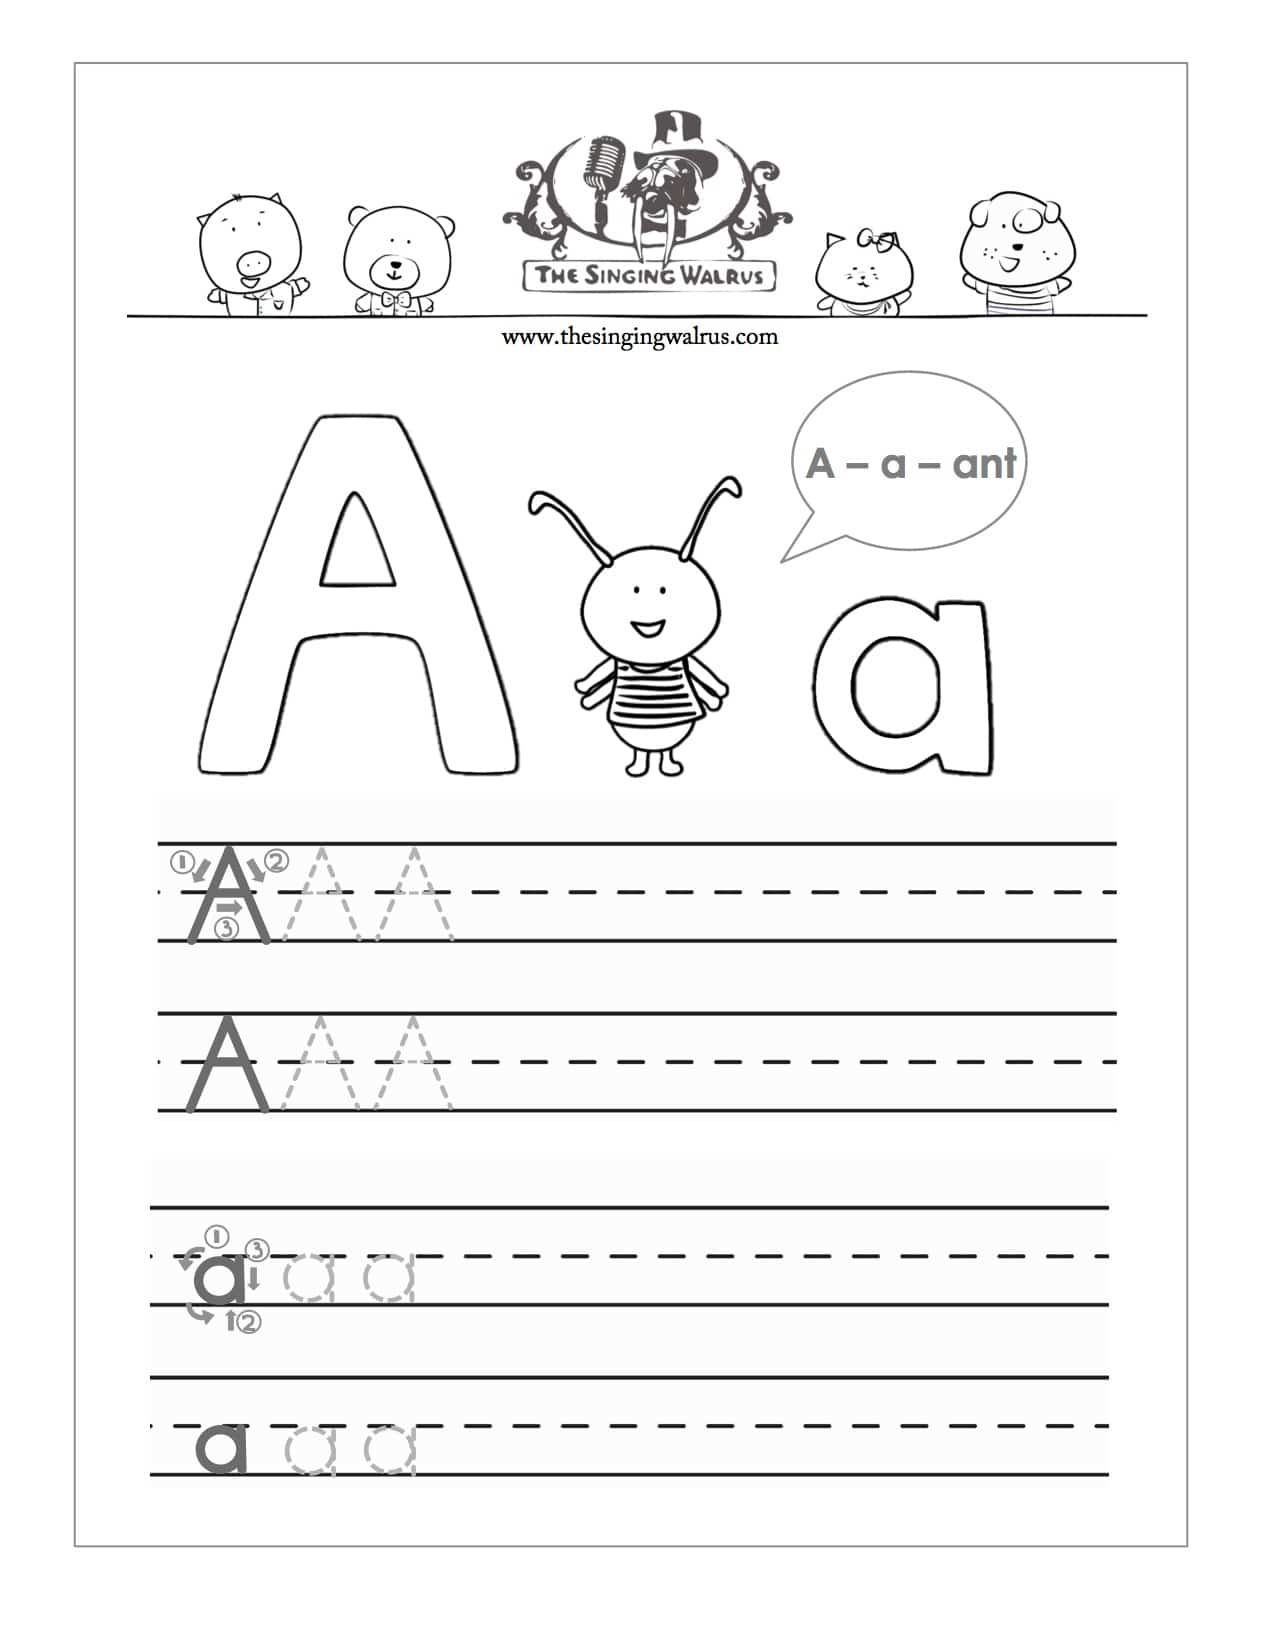 Traceable Worksheets Maker : Kindergarten handwriting worksheet maker letter b